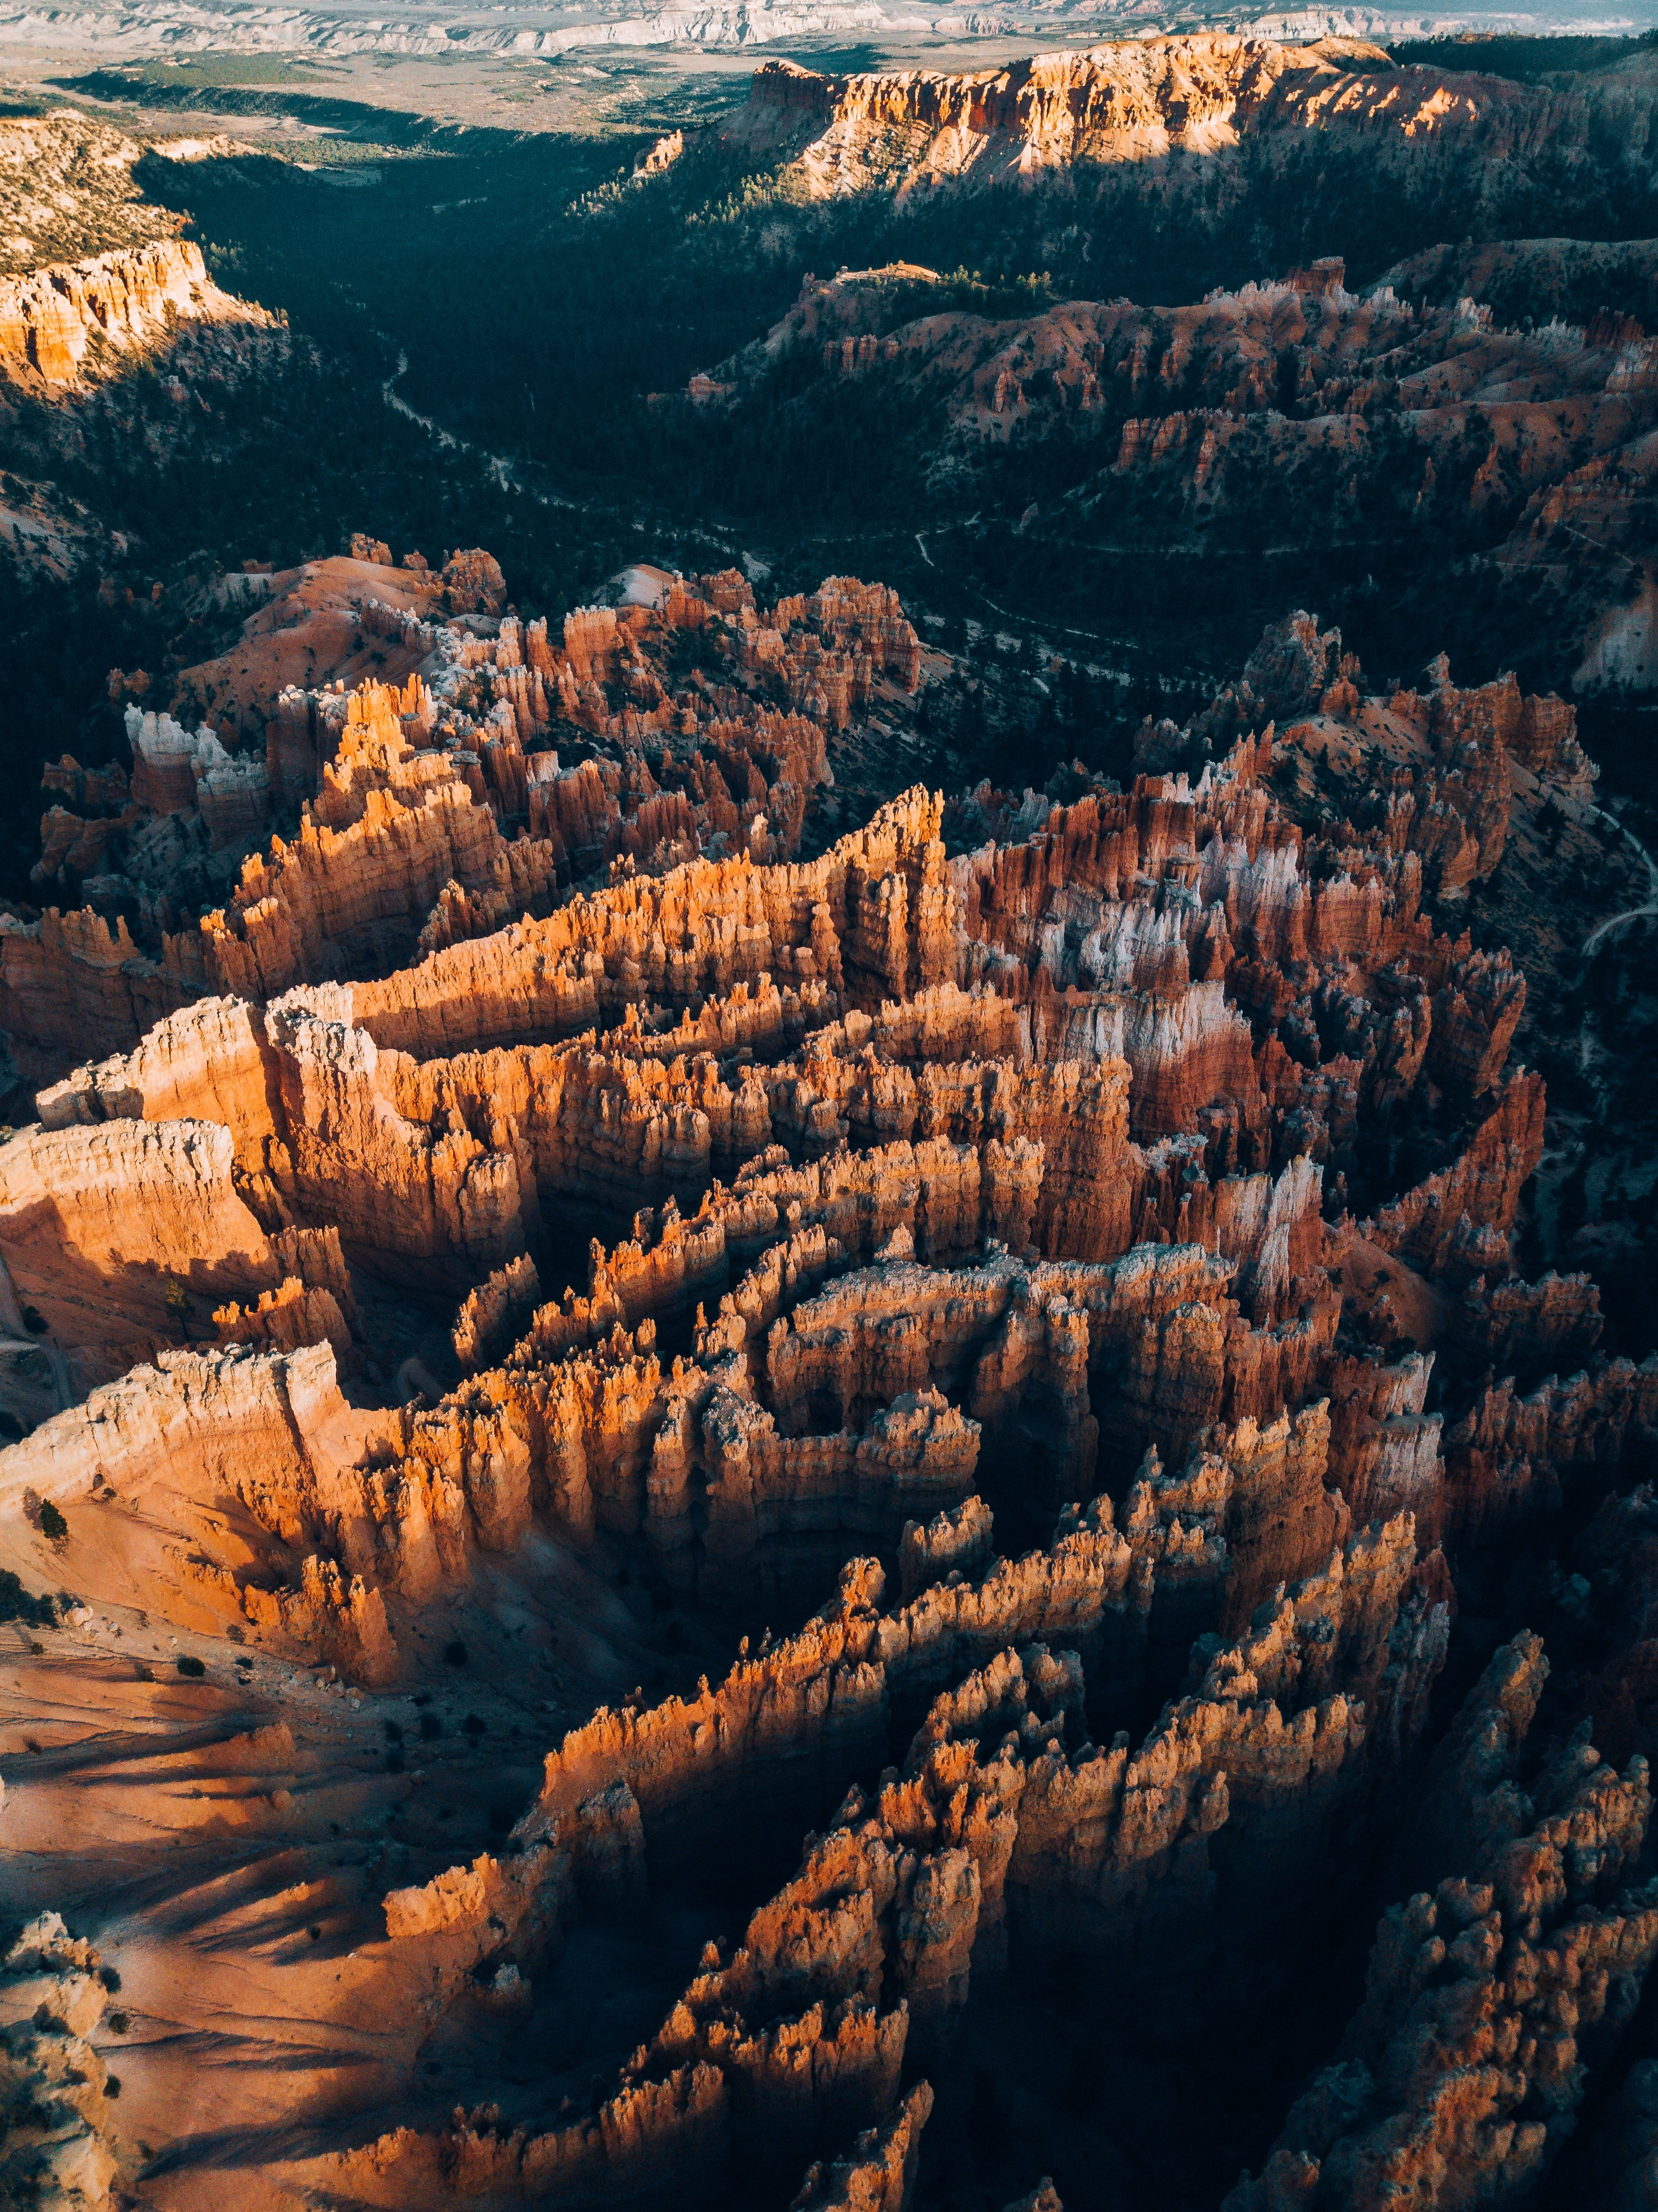 157406 download wallpaper Nature, Canyon, Rocks, Aerial View, Rivers, Forest, Relief, Landscape screensavers and pictures for free